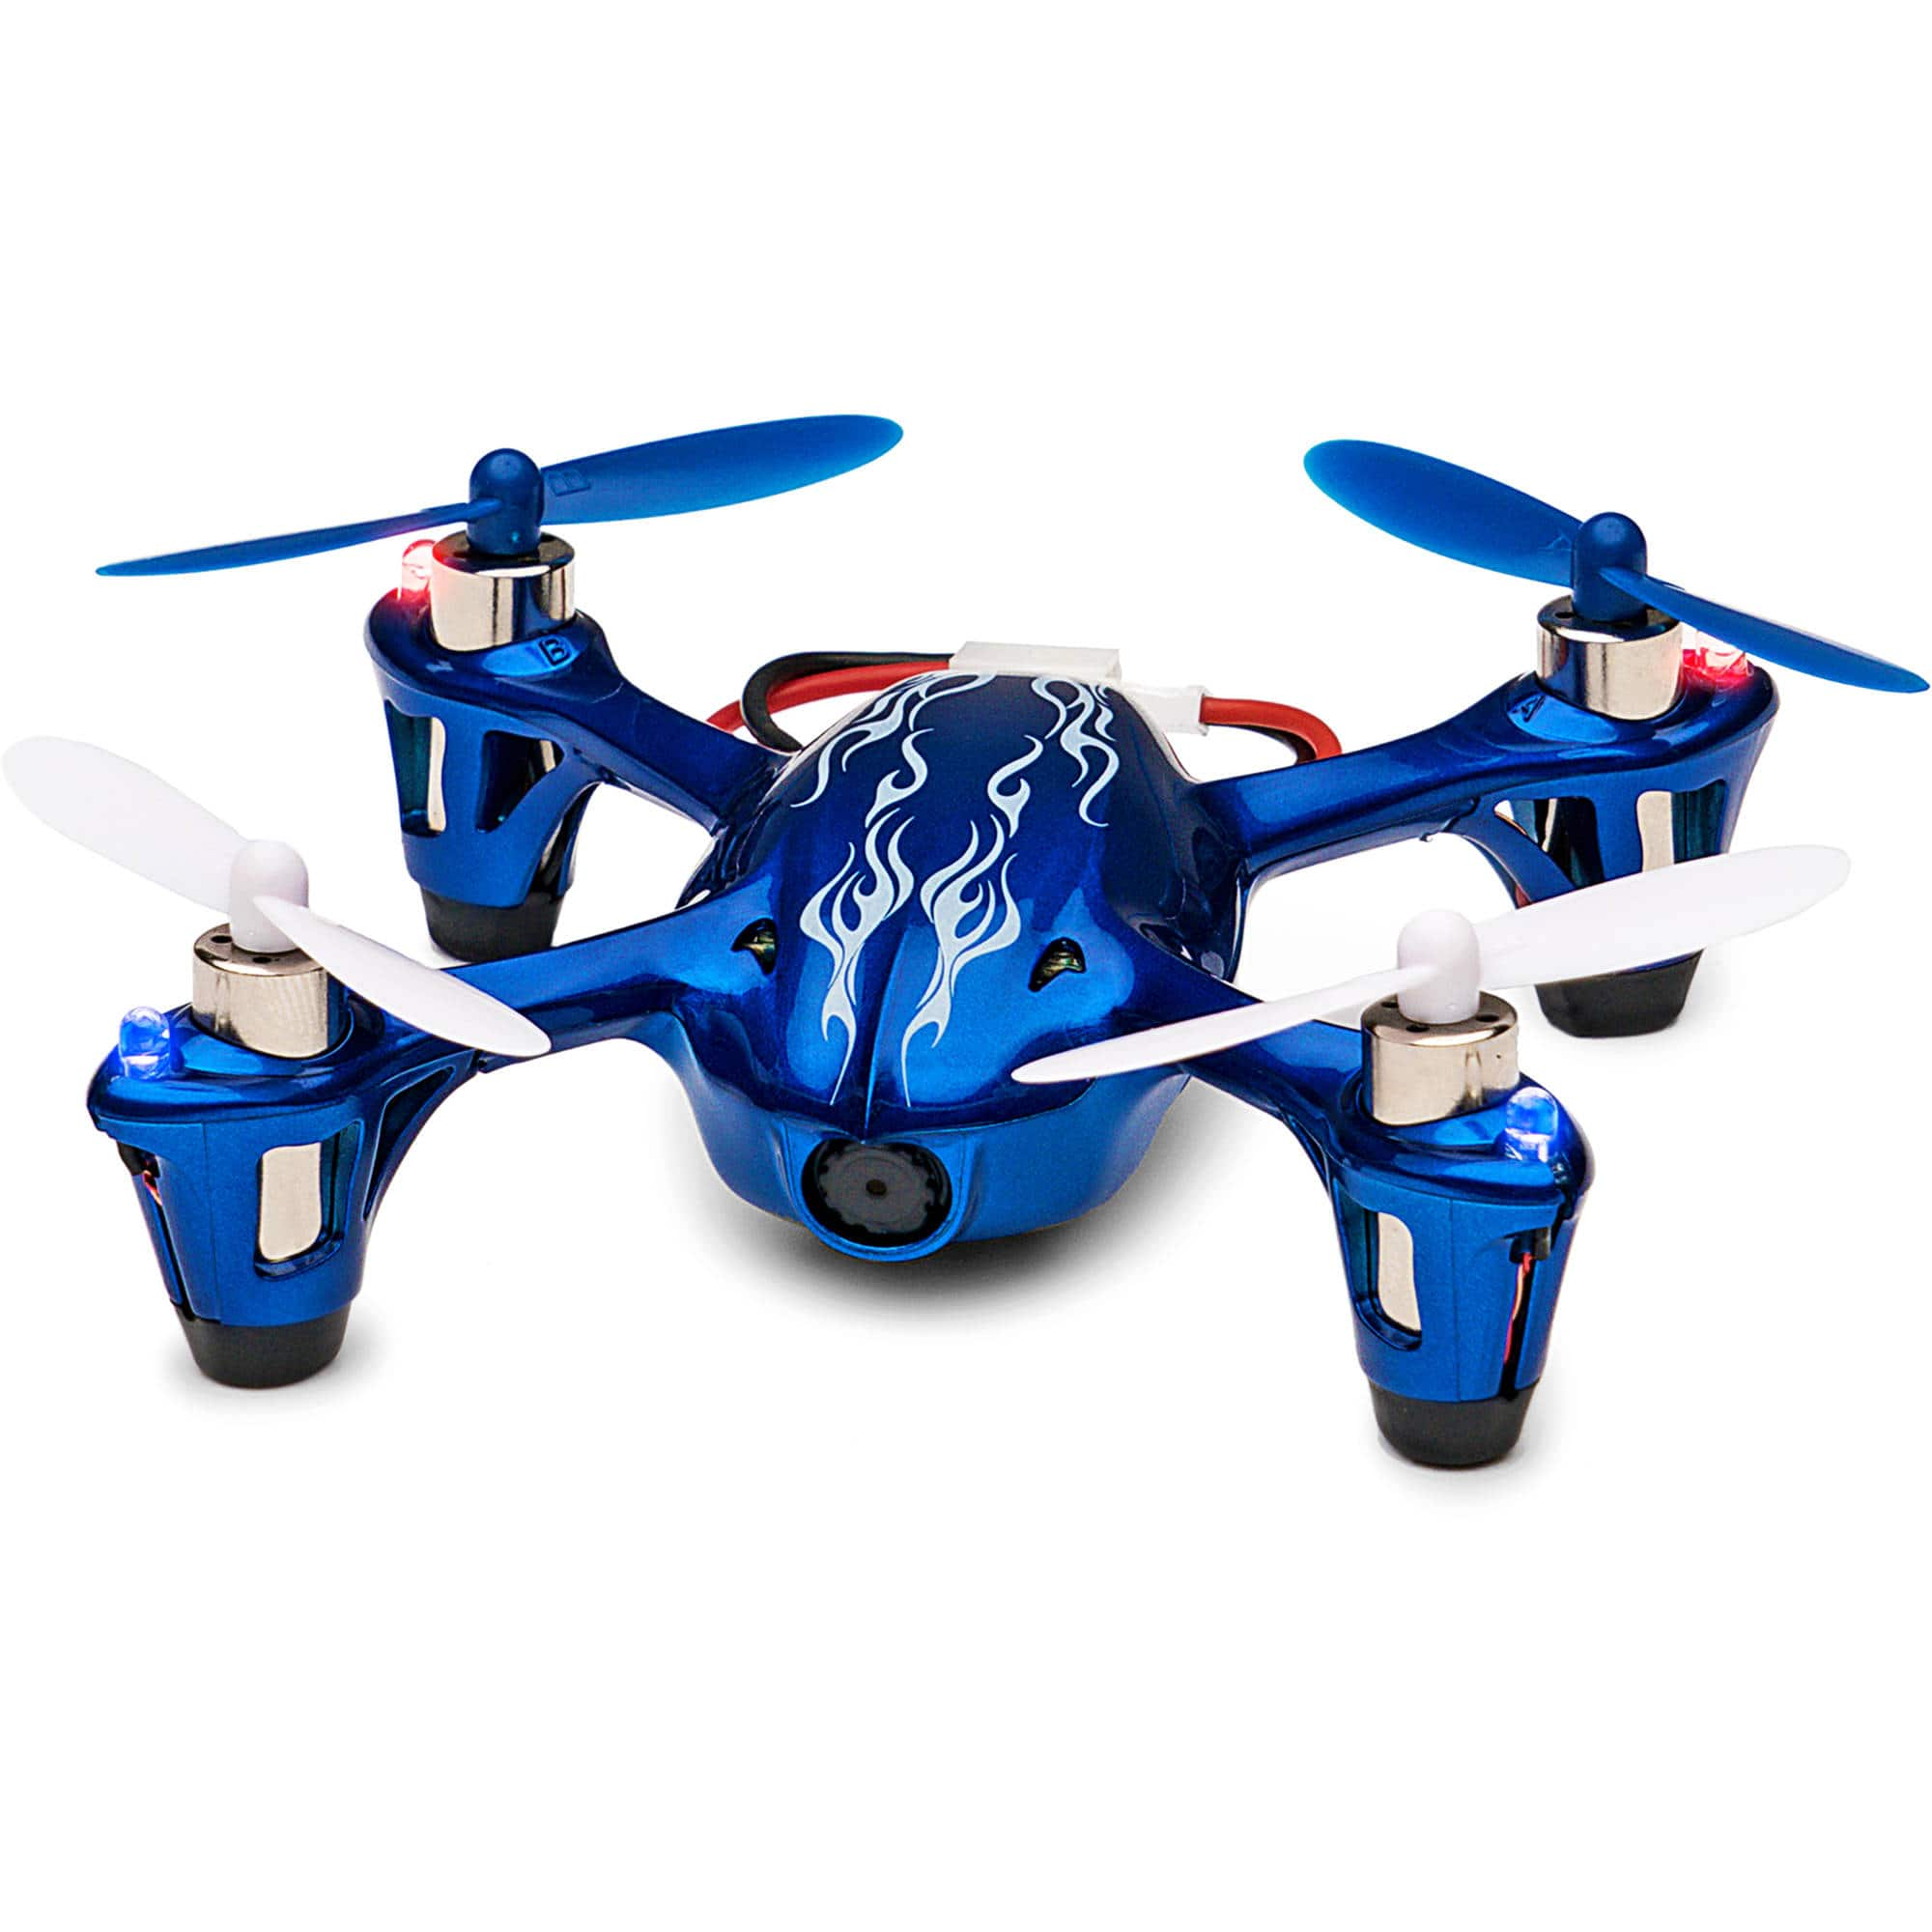 HUBSAN X4 H107C-HD Quadcopter with 720p Video Camera (Royal Blue)  $29.99 @ B&H Photo w/ Free Shipping